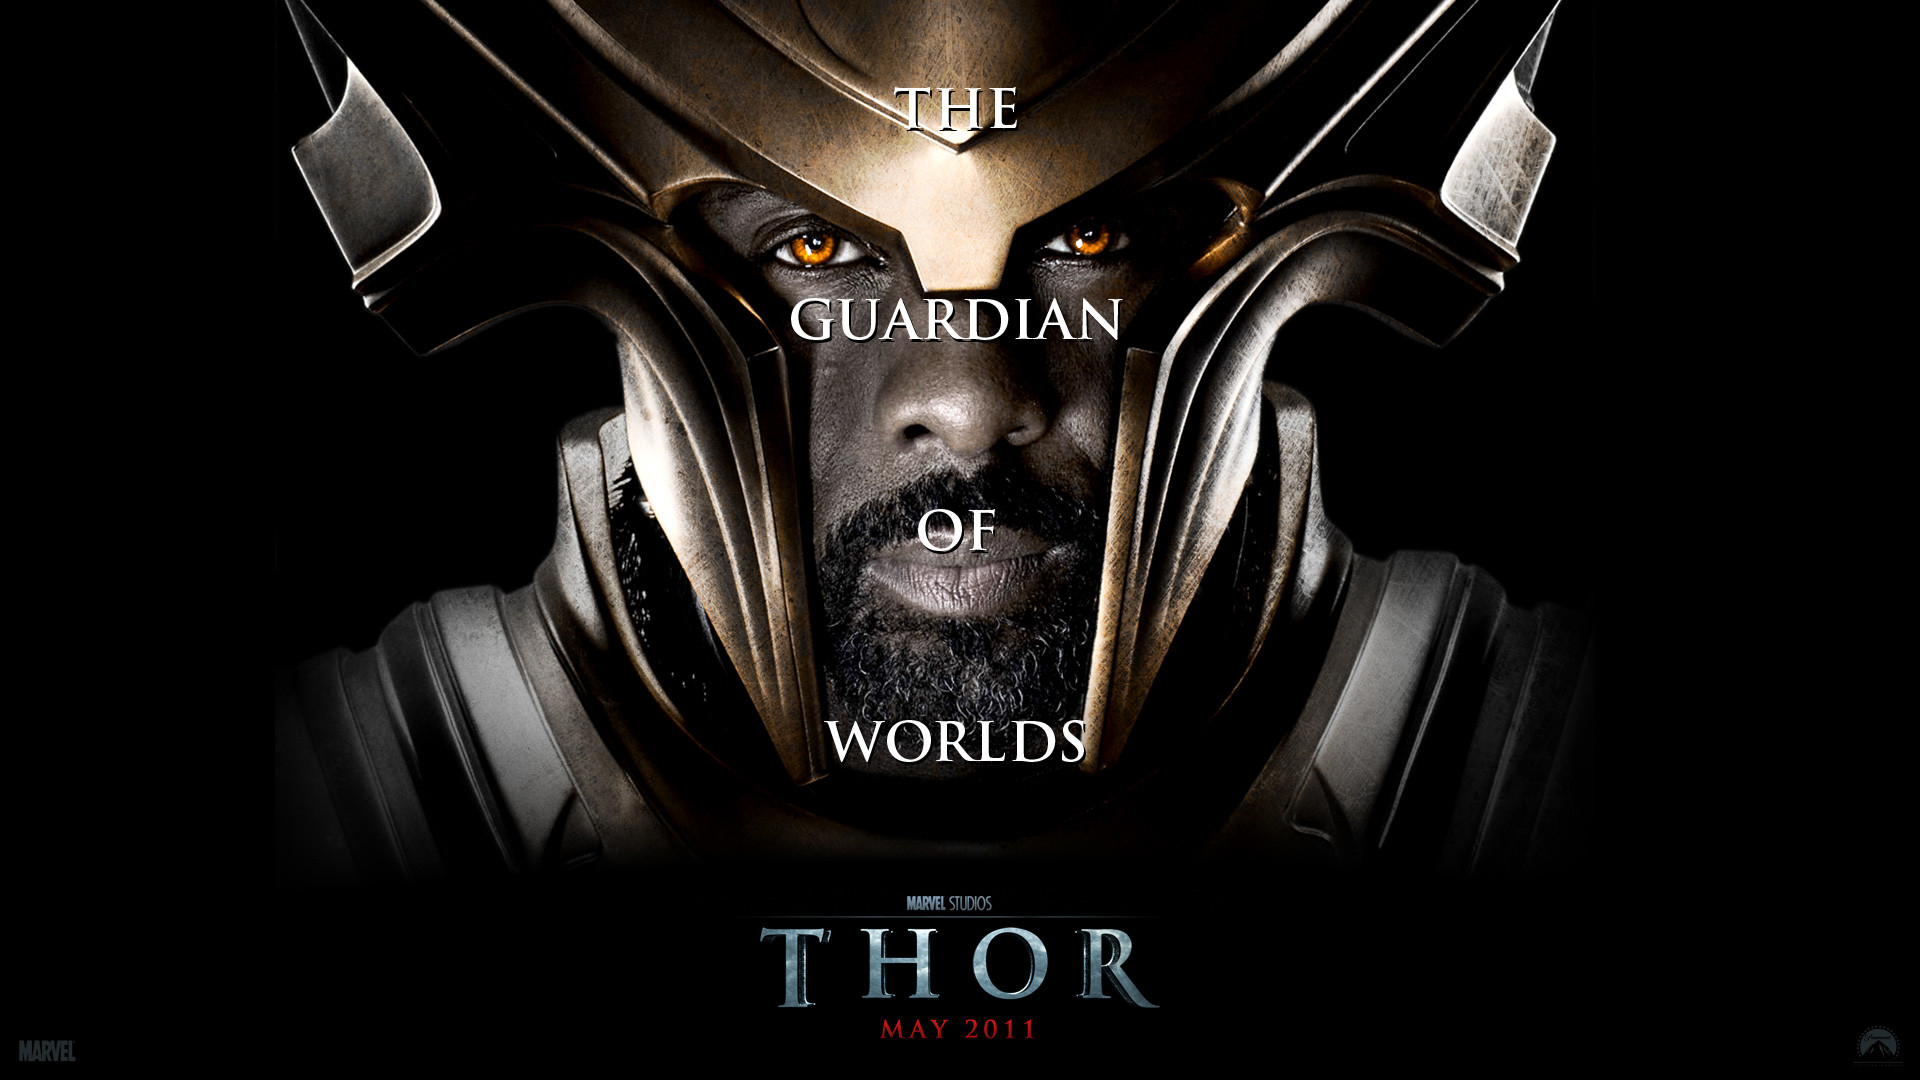 Res: 1920x1080, Heimdall from the Movie Thor wallpaper - Click picture for high resolution  HD wallpaper